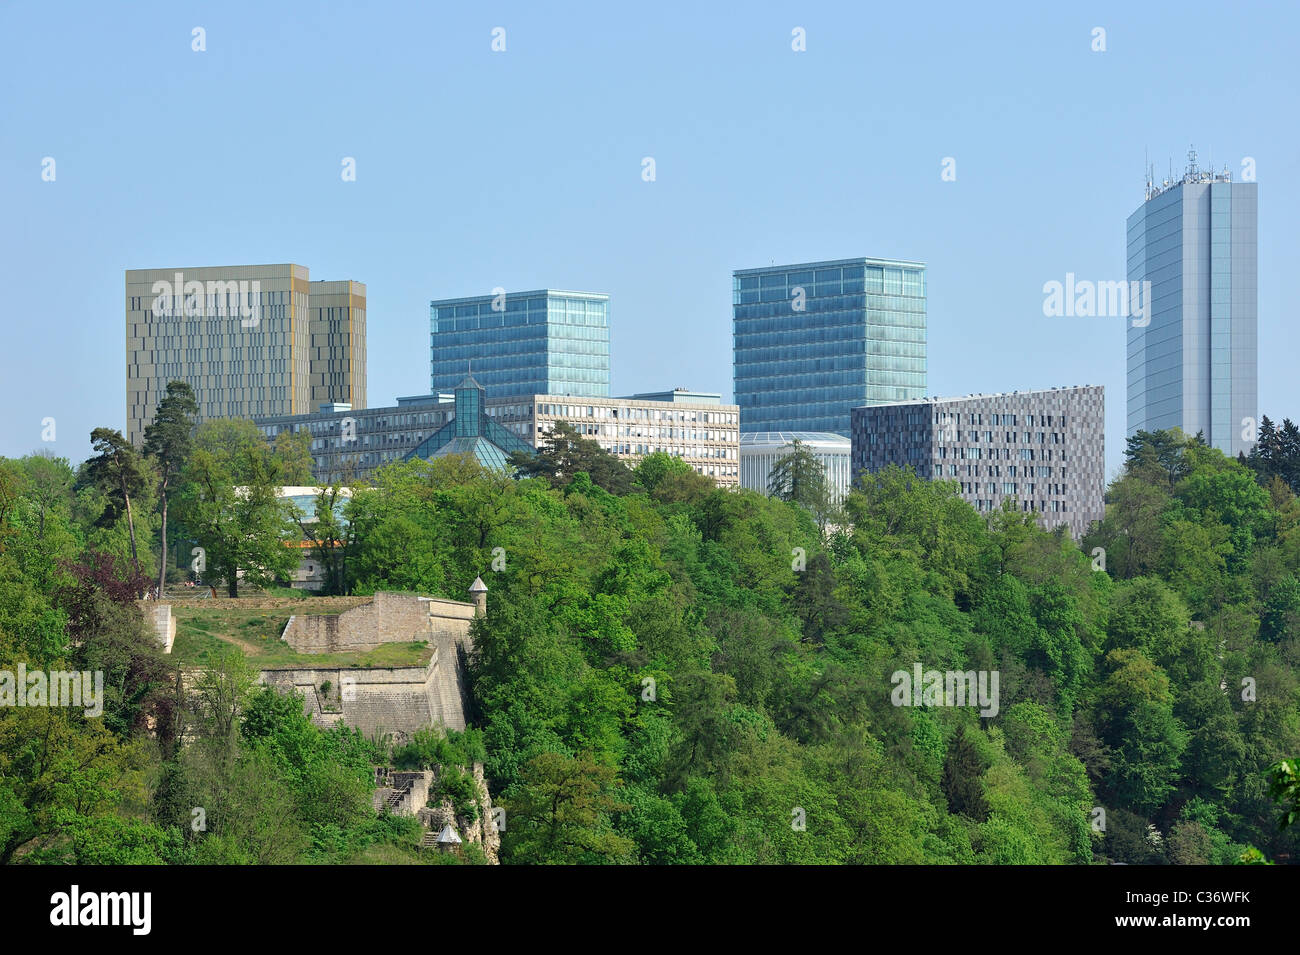 Modern buildings at the Plateau de Kirchberg in Luxembourg, Grand Duchy of Luxembourg - Stock Image